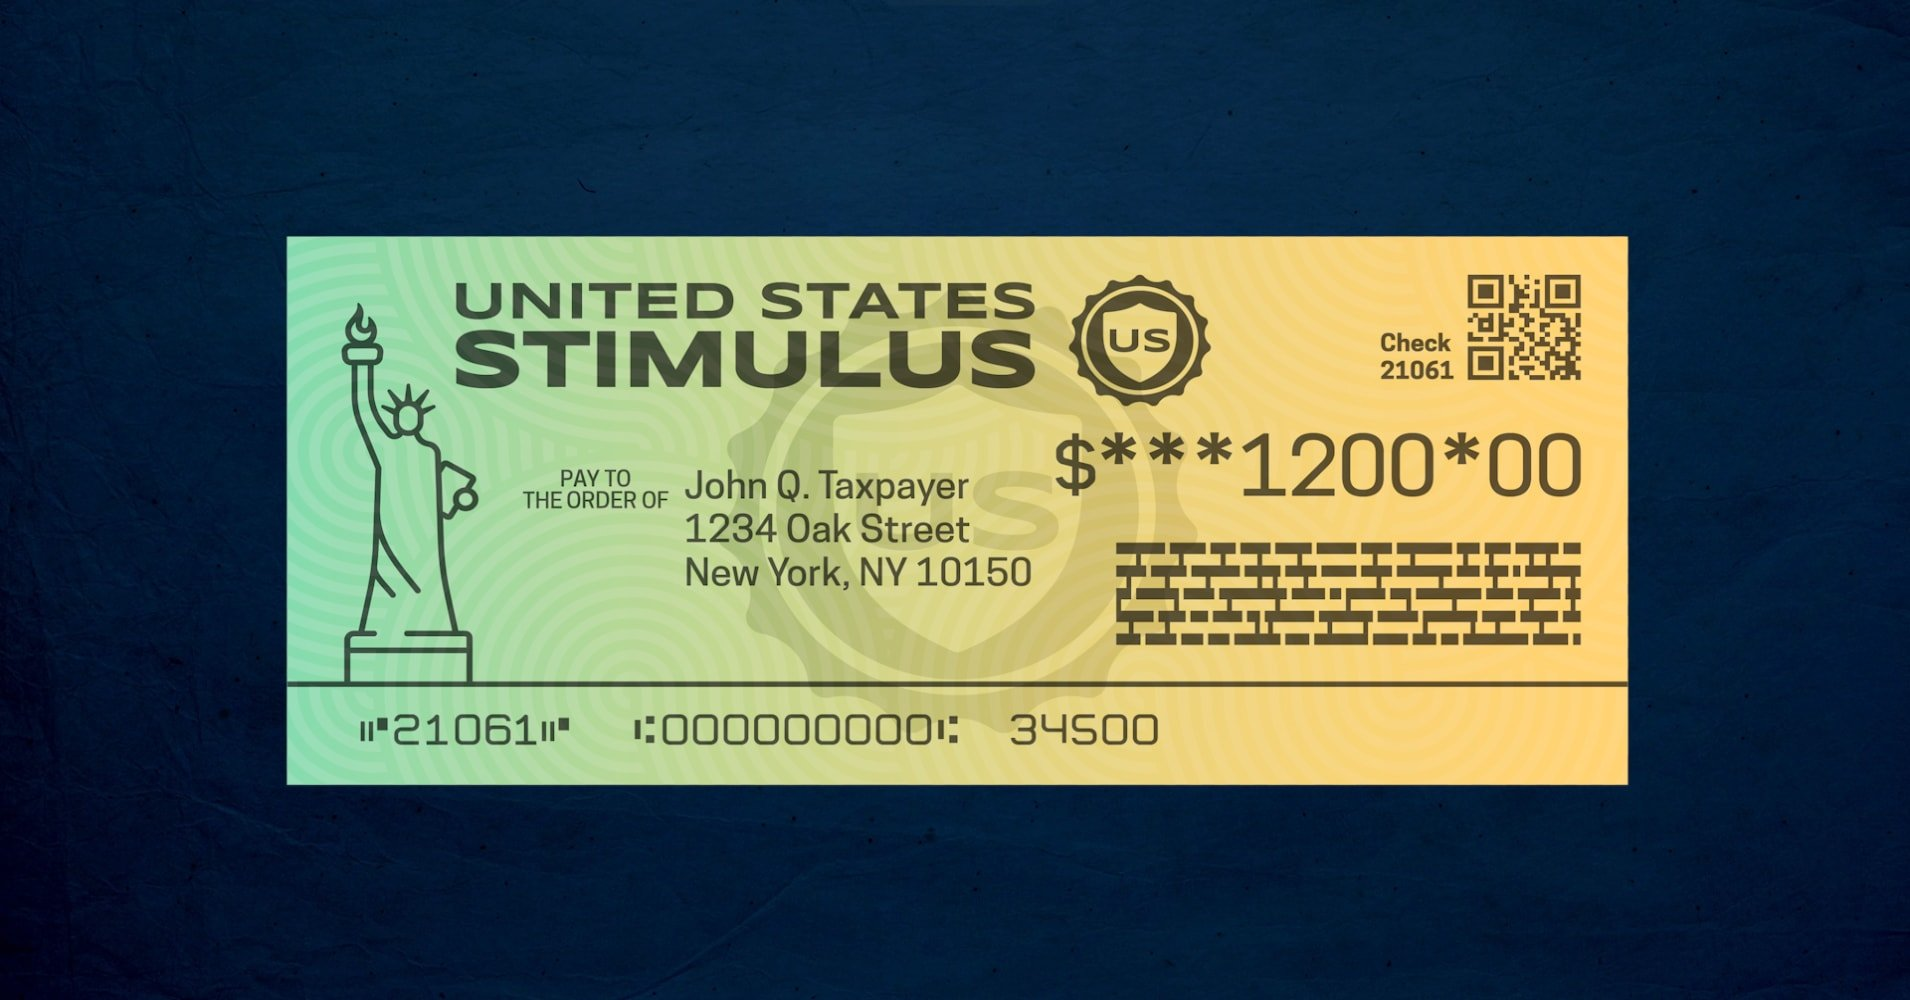 Stimulus Check Payment Things to Know